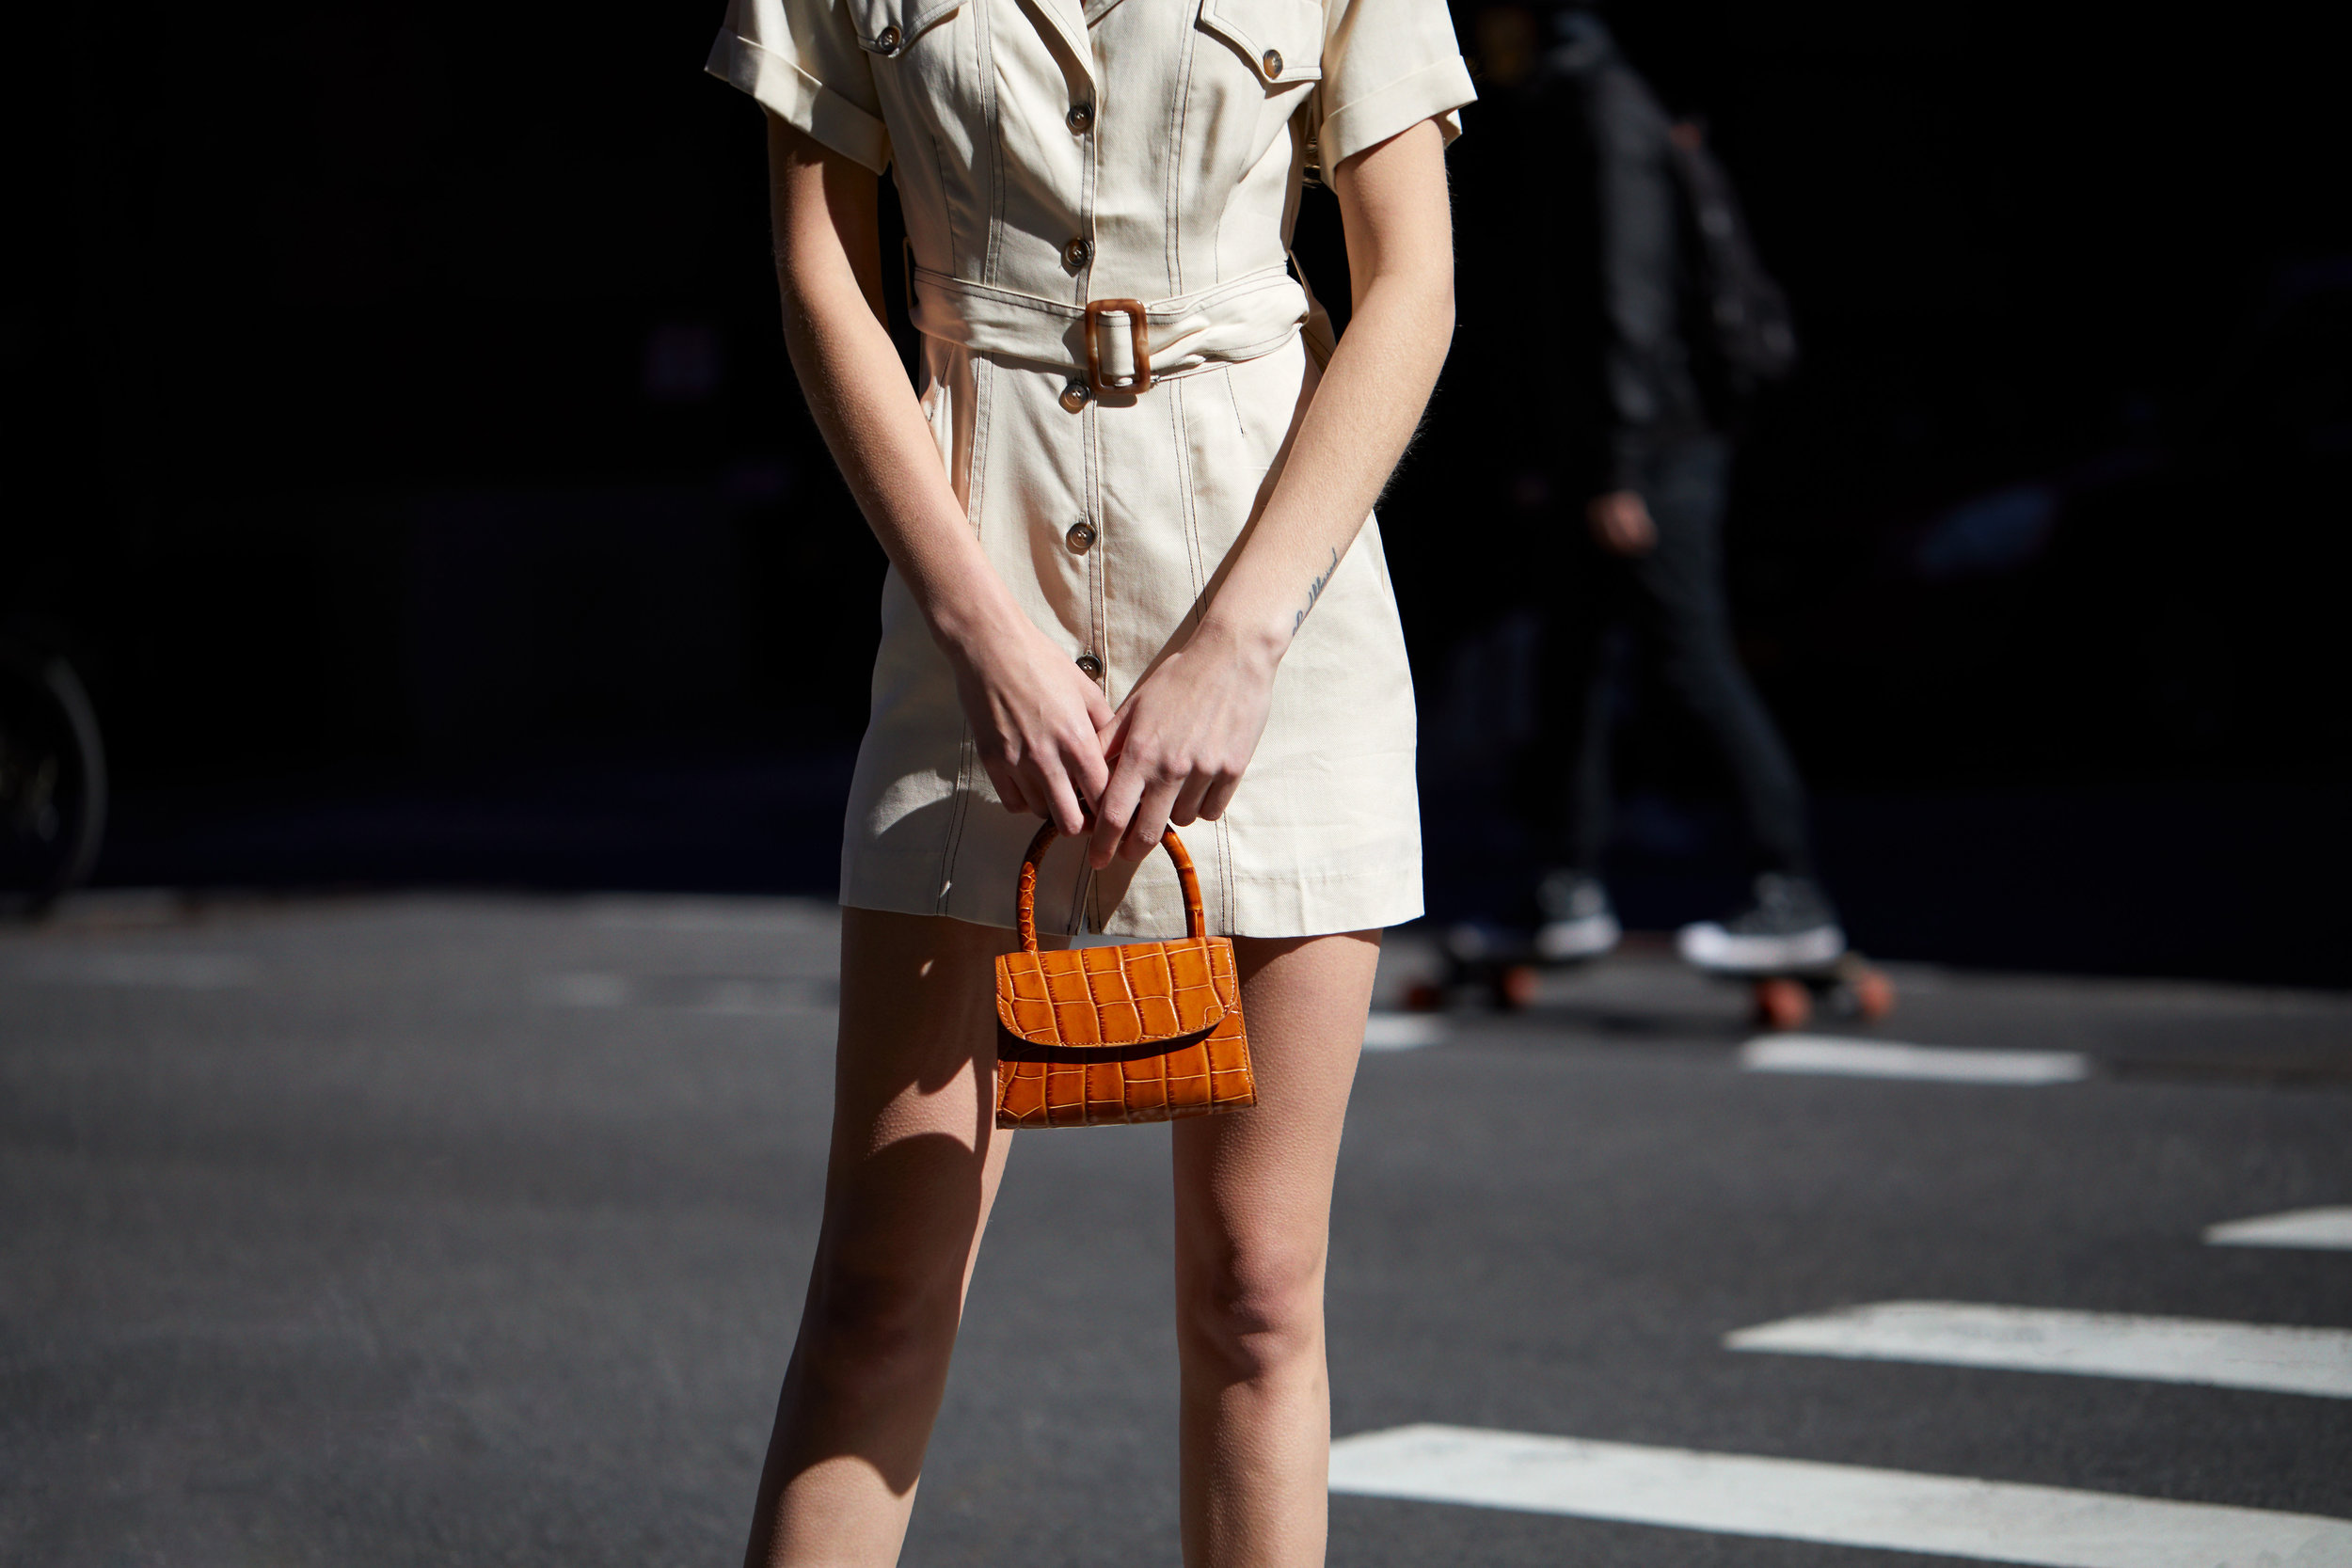 ASTR the Label Freehand Mini Dress With Topstitching - Natural & by FAR Mini Tan Croco Embossed Leather Bag